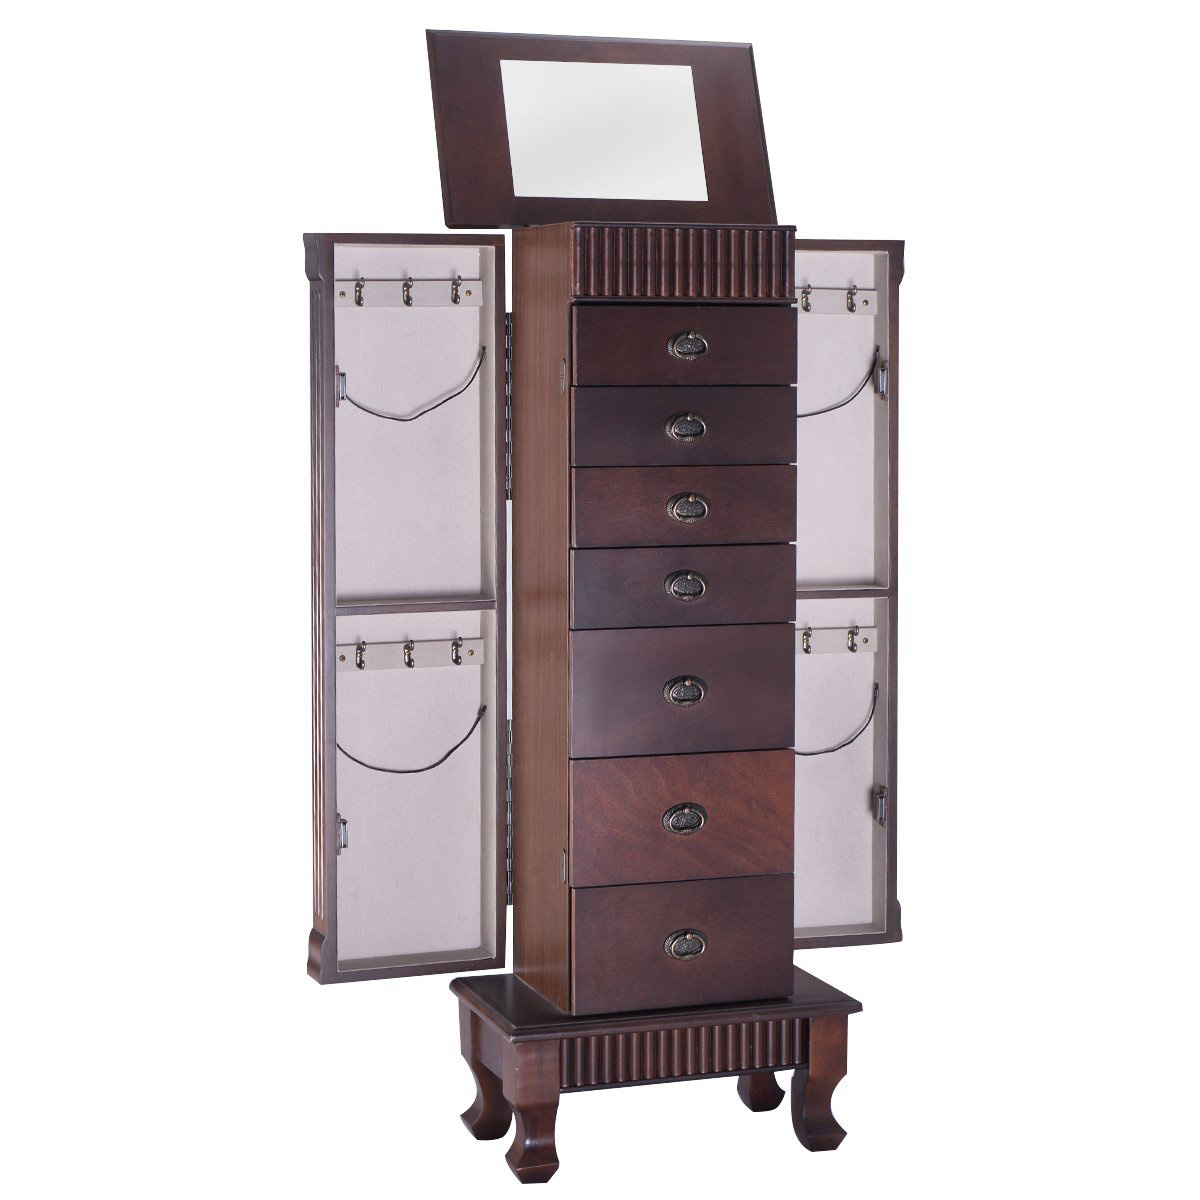 Standing Jewelry Armoire ~ The perfect jewelry armoires zen merchandiser